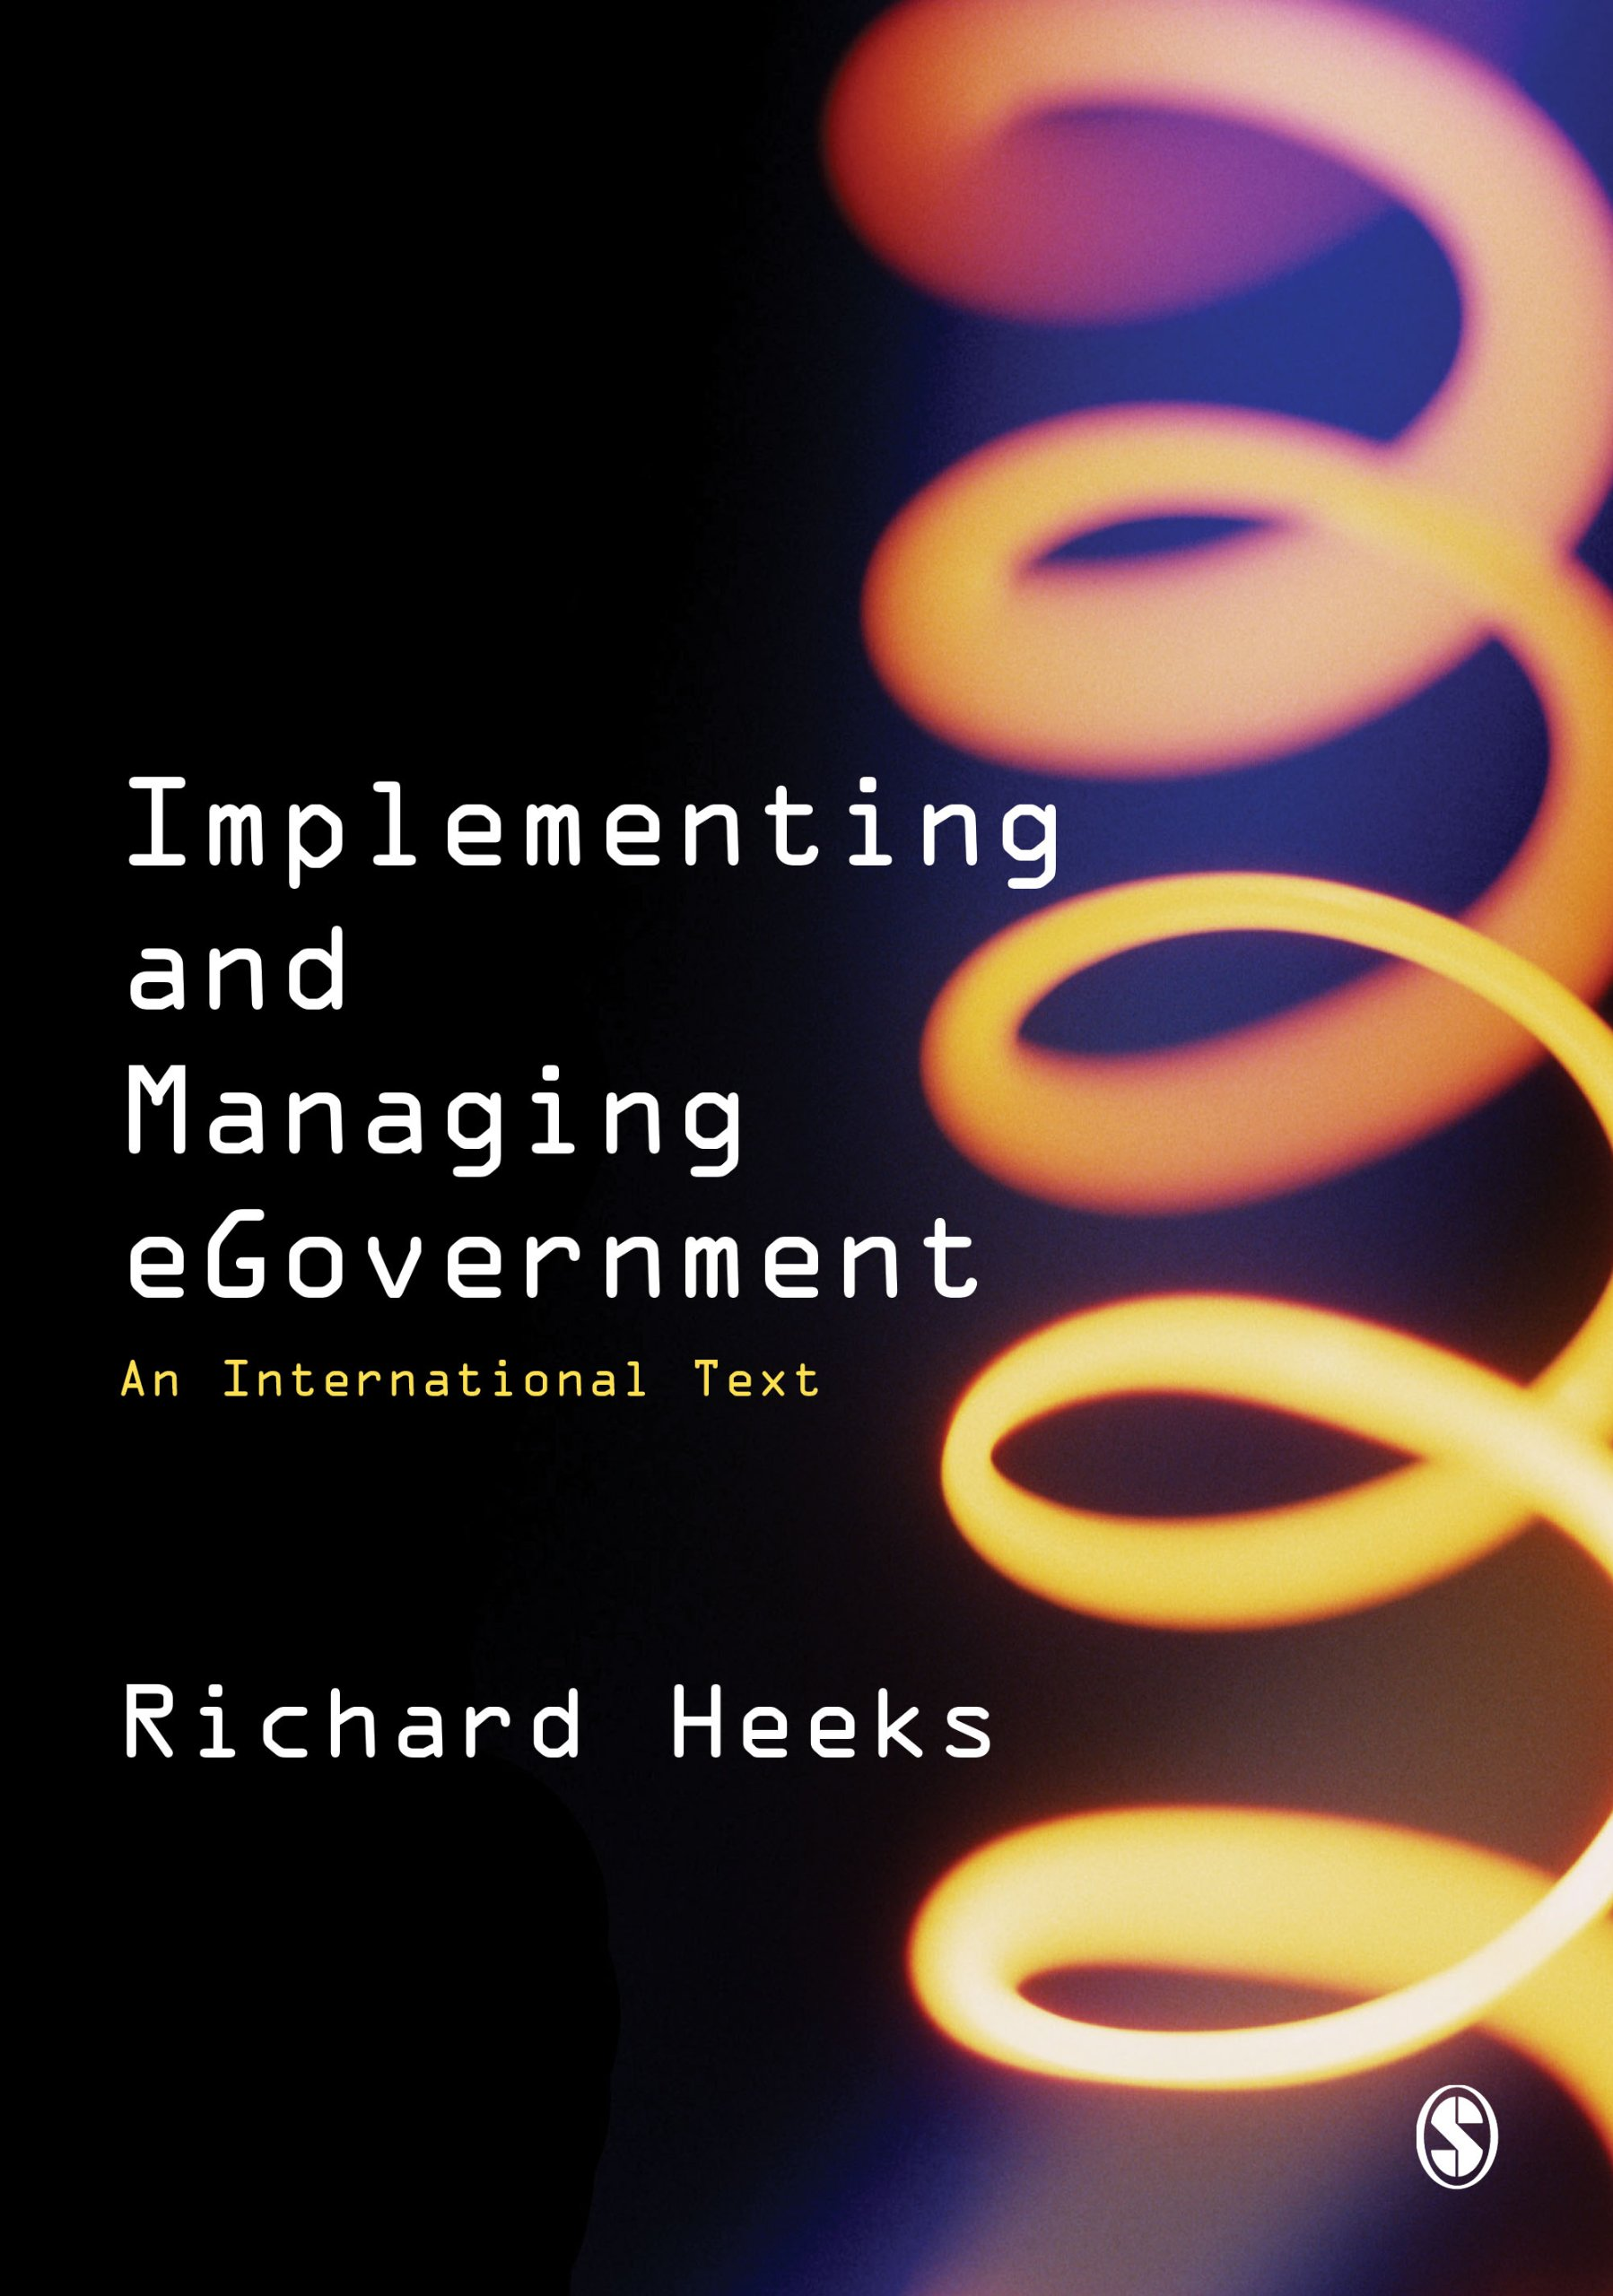 Image OfImplementing And Managing EGovernment: An International Text (English Edition)